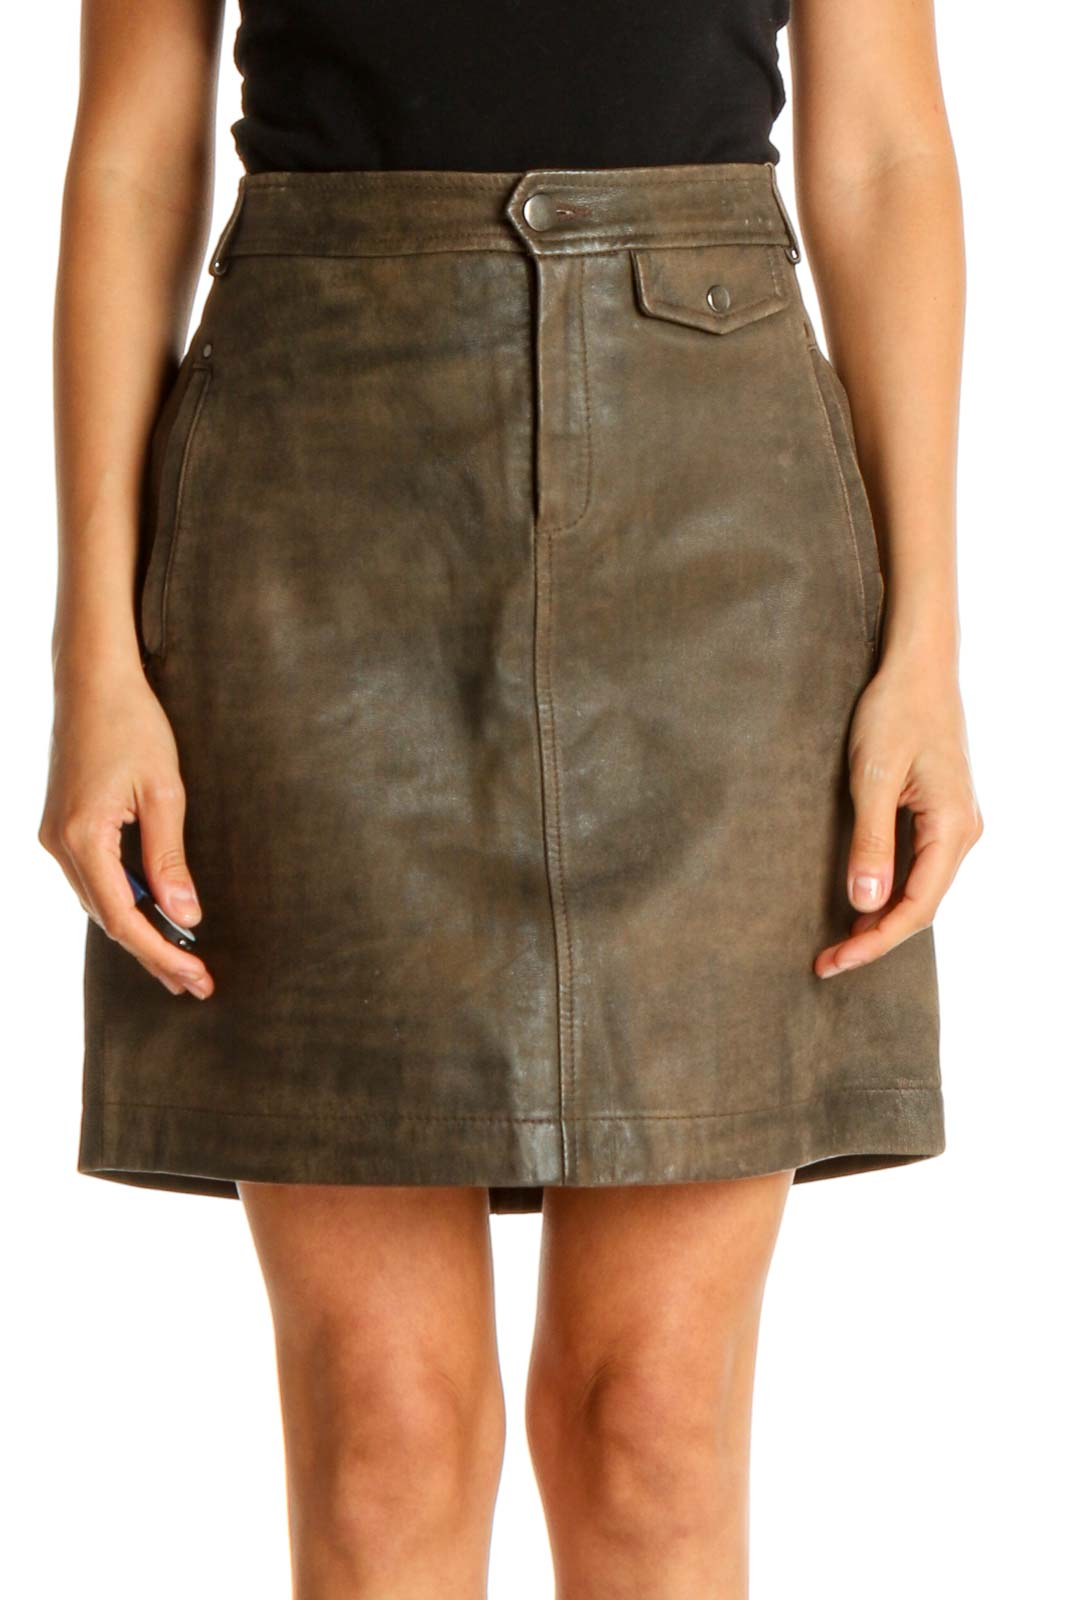 Green Brown Chic A-Line Leather Skirt Front